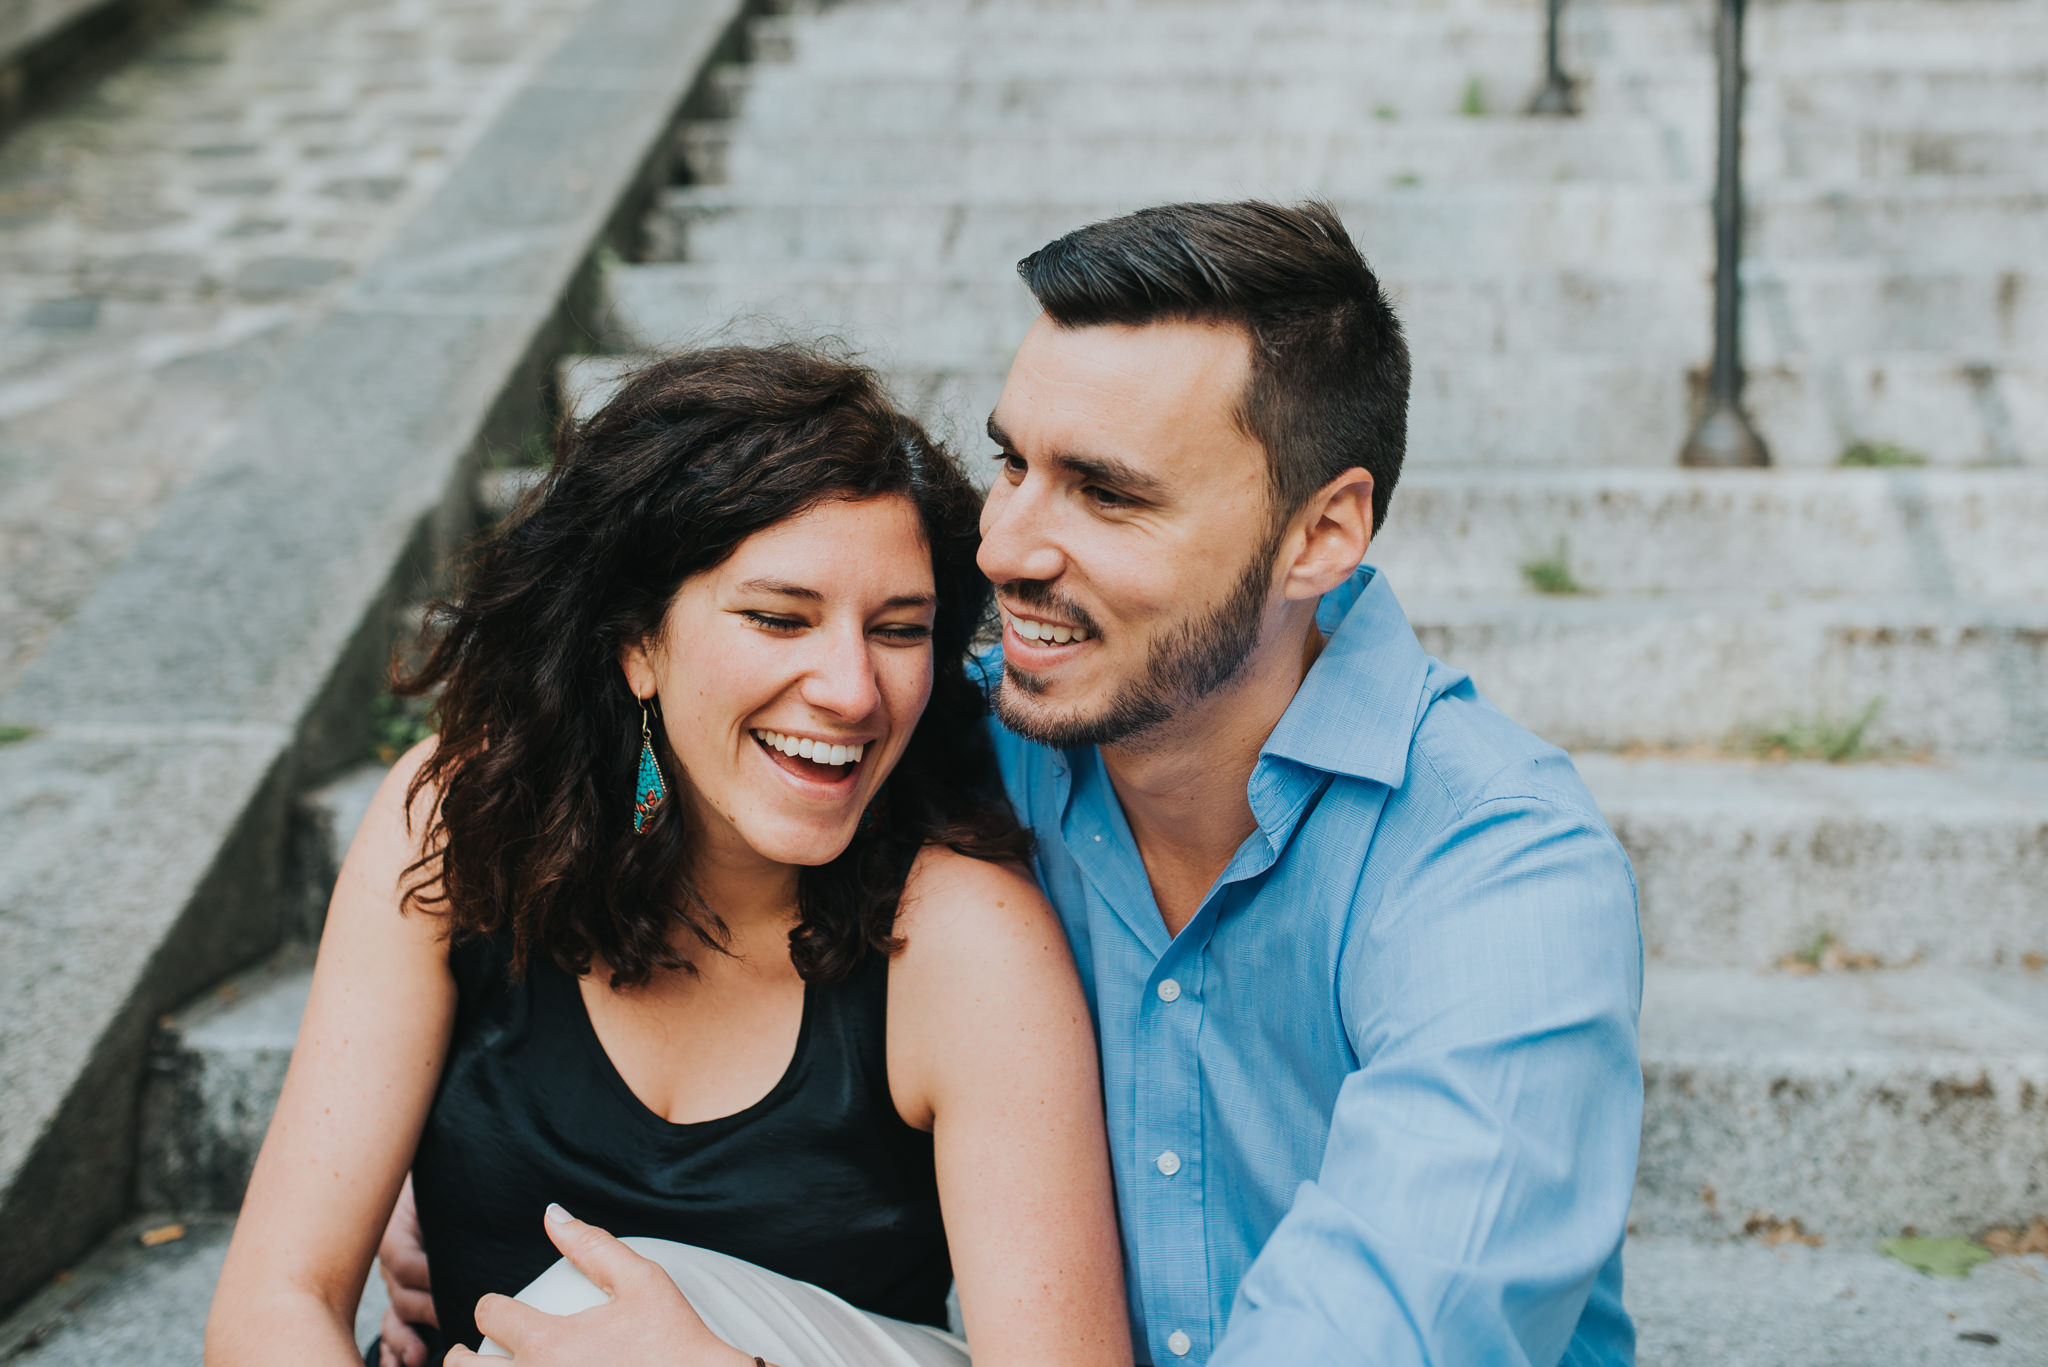 Close up of man and woman laughing on steps in Paris